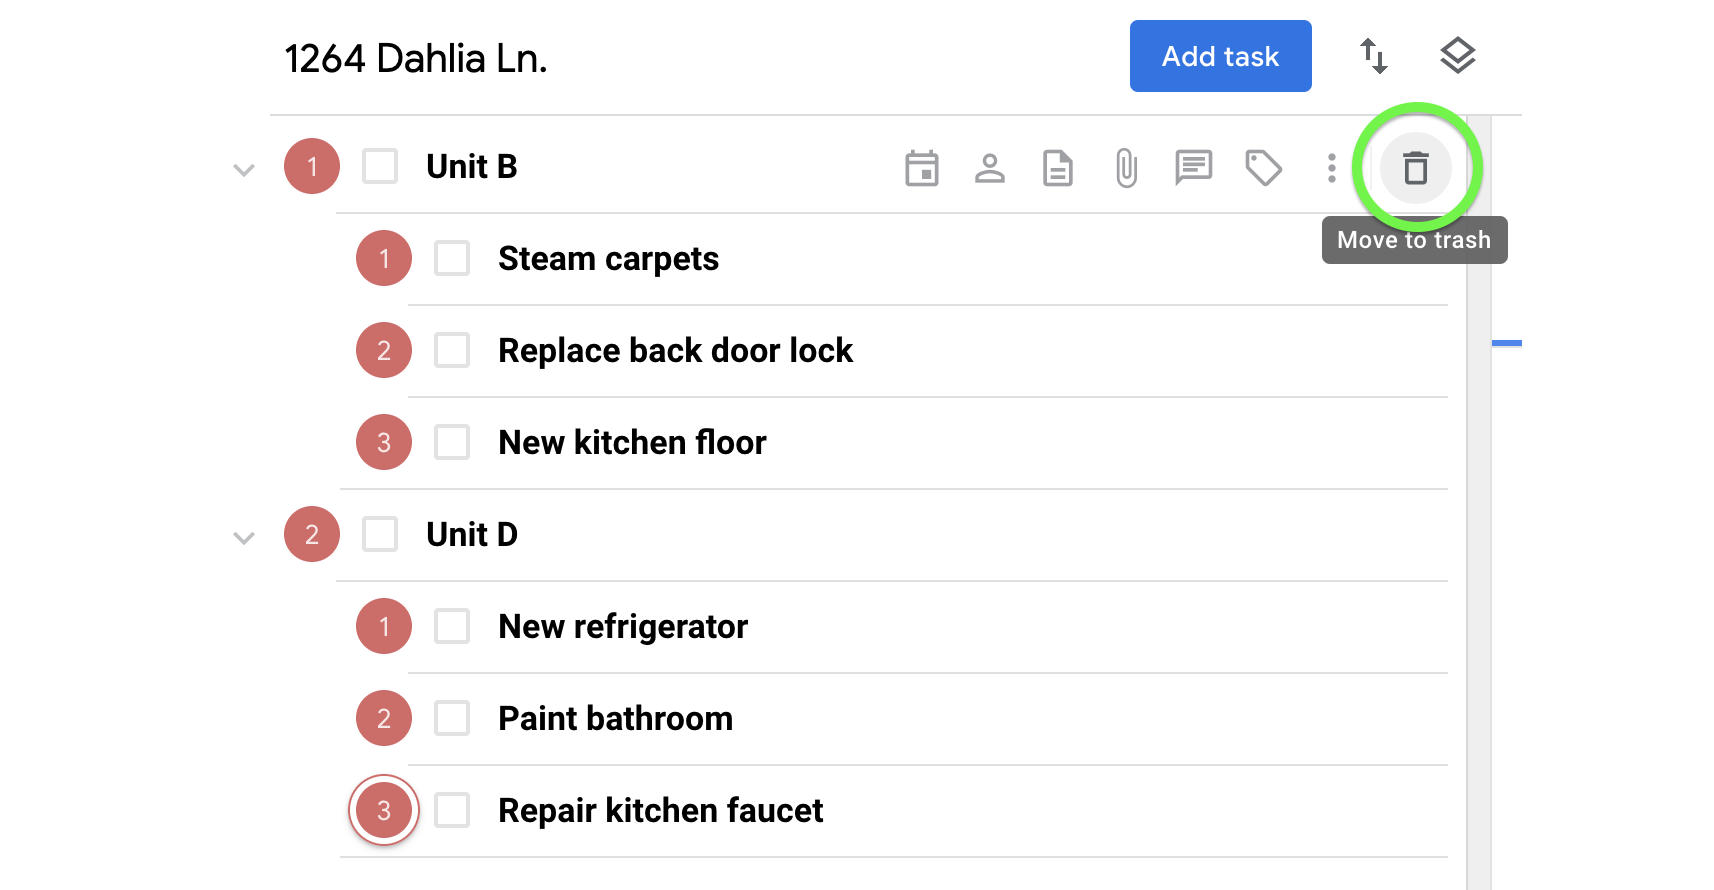 Moving a task with subtasks to the trash separates the parent task from the subtasks.